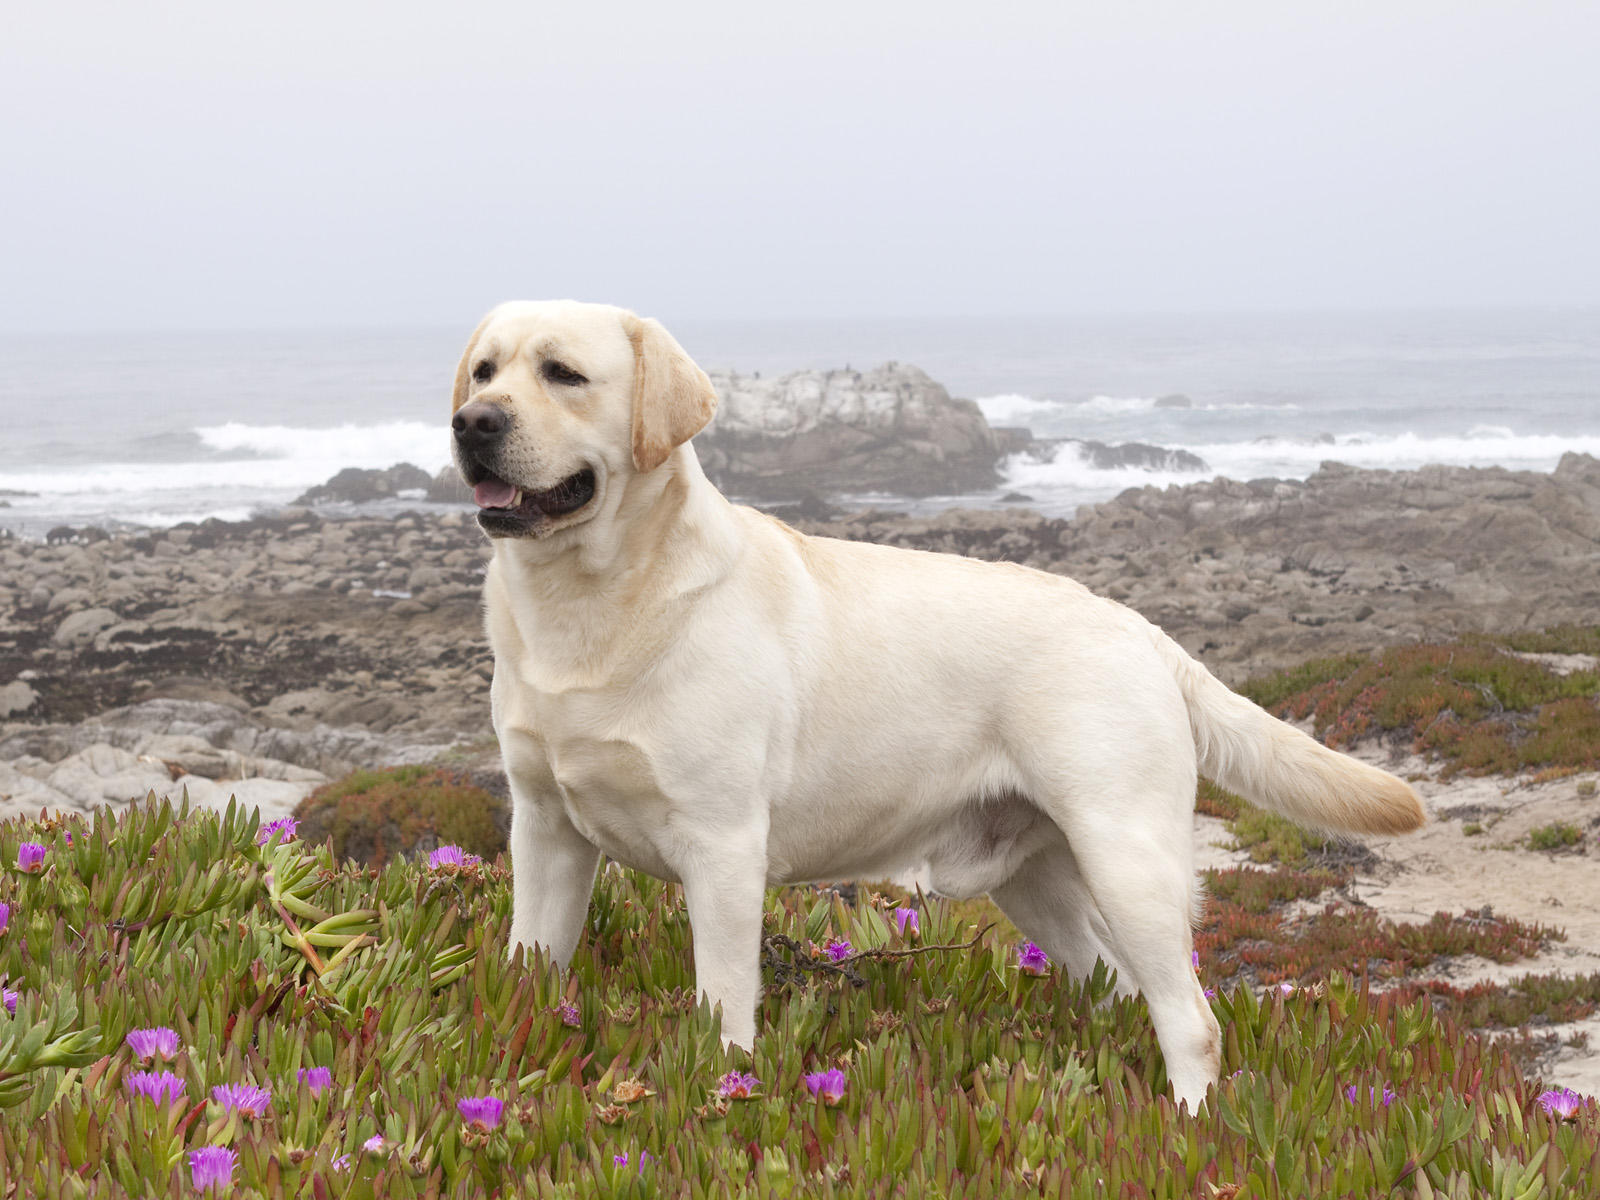 Labrador Retriever Wallpapers High Resolution and Quality Download 1600x1200